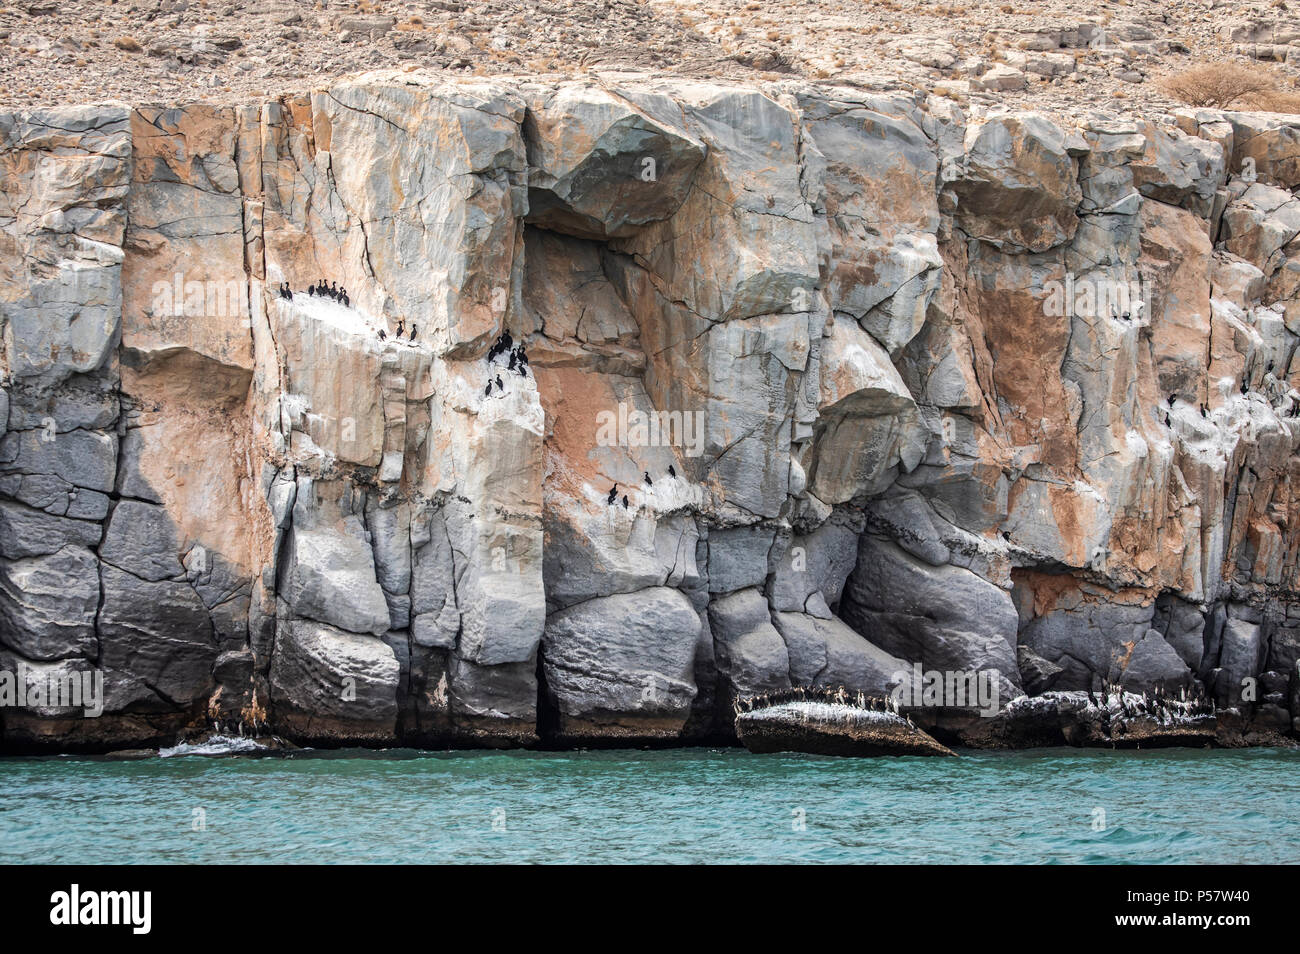 cormorant birds on a beach of Musandam in Oman, close to their nesting grounds - Stock Image